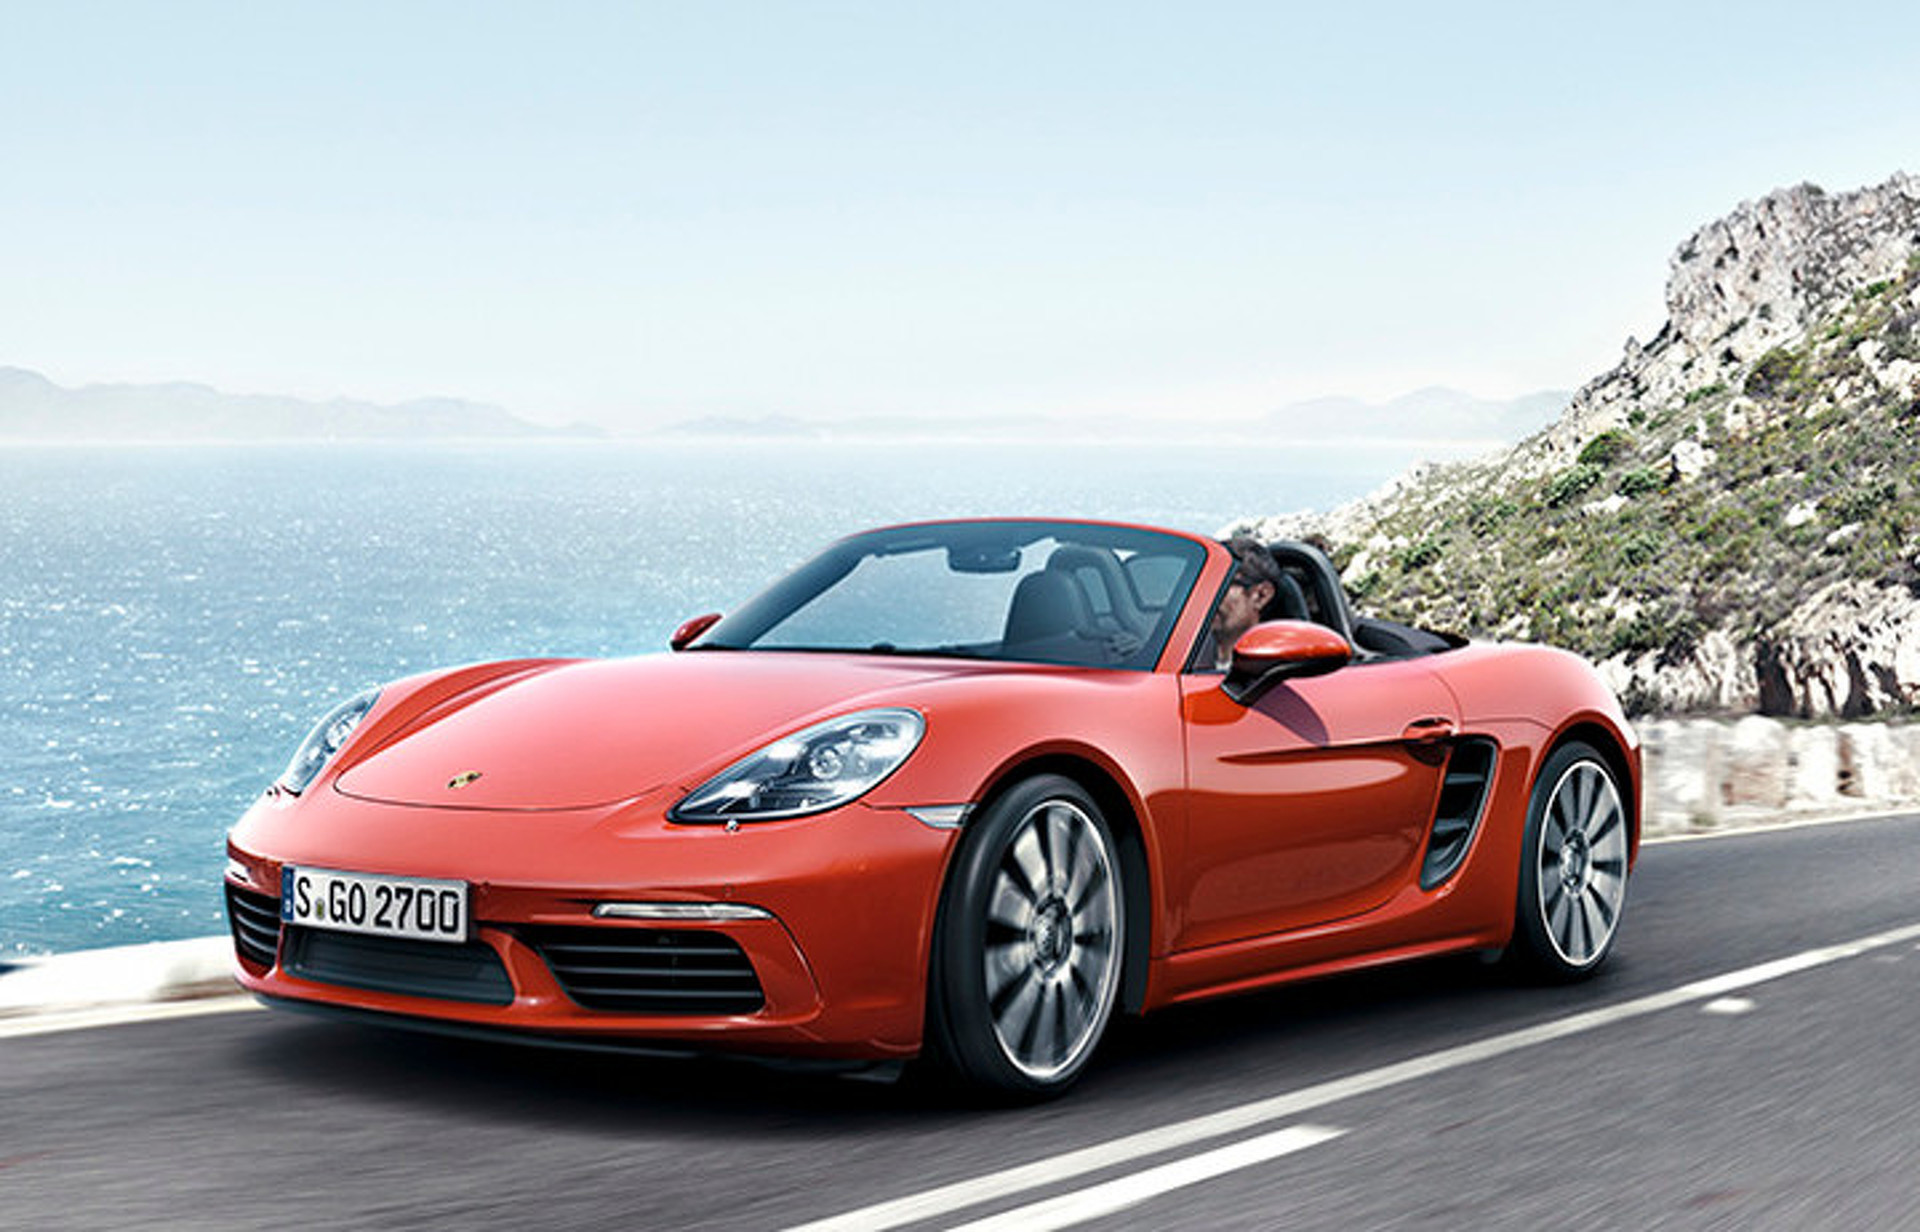 2017 Porsche 718 Boxster: New Numbers, New Look, New Engines